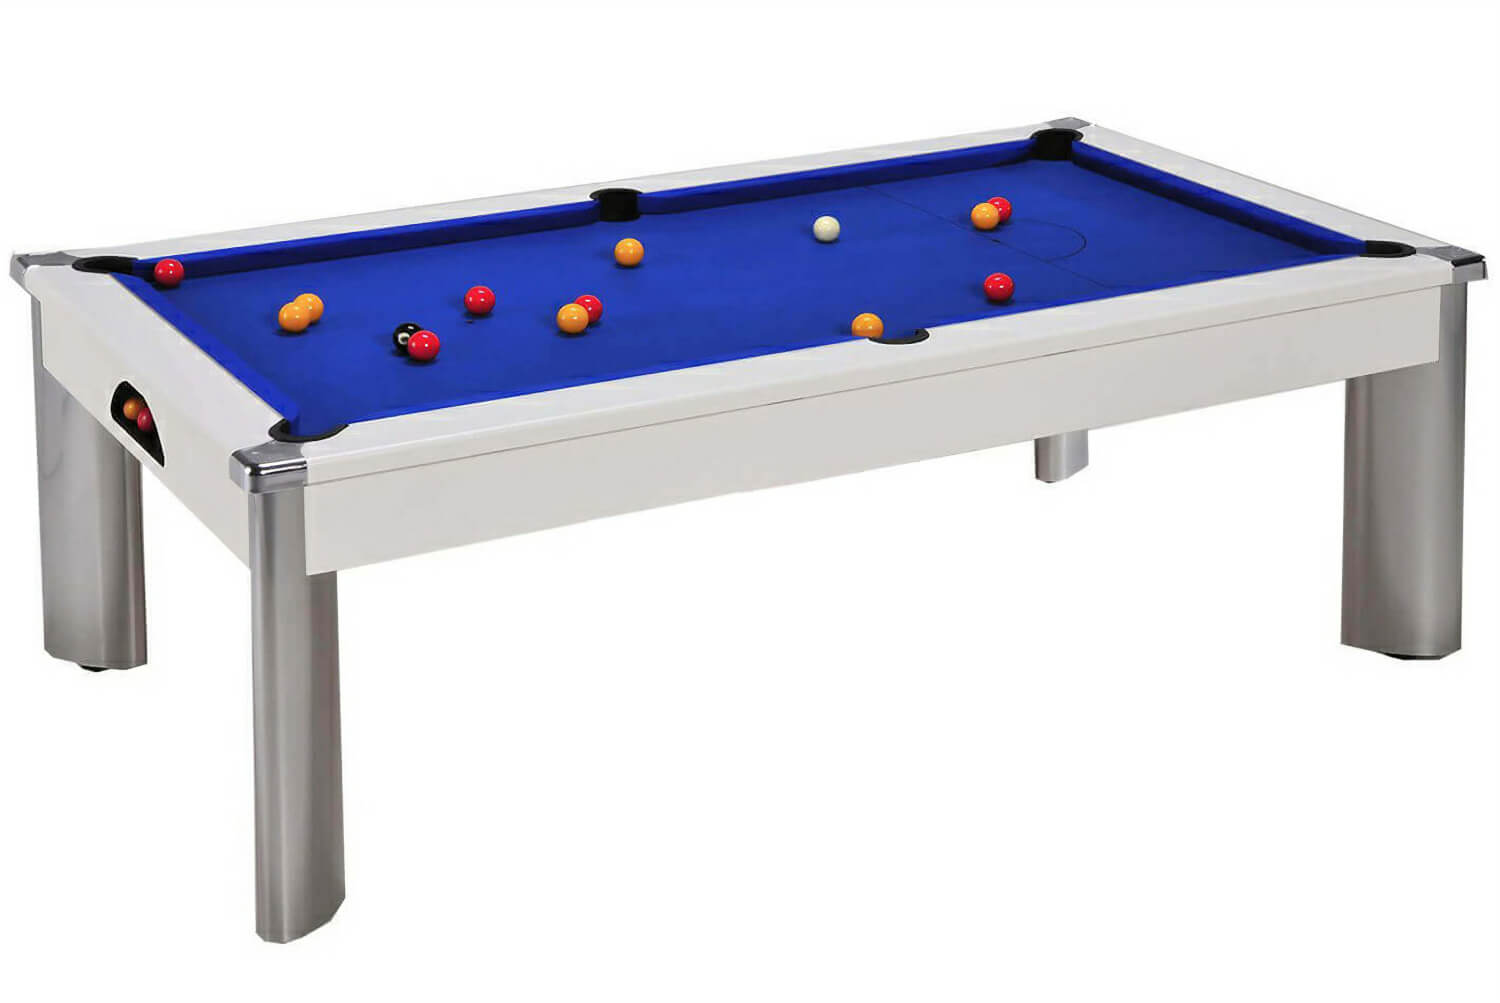 Fusion outdoor pool dining table 7 ft liberty games Pool dining table